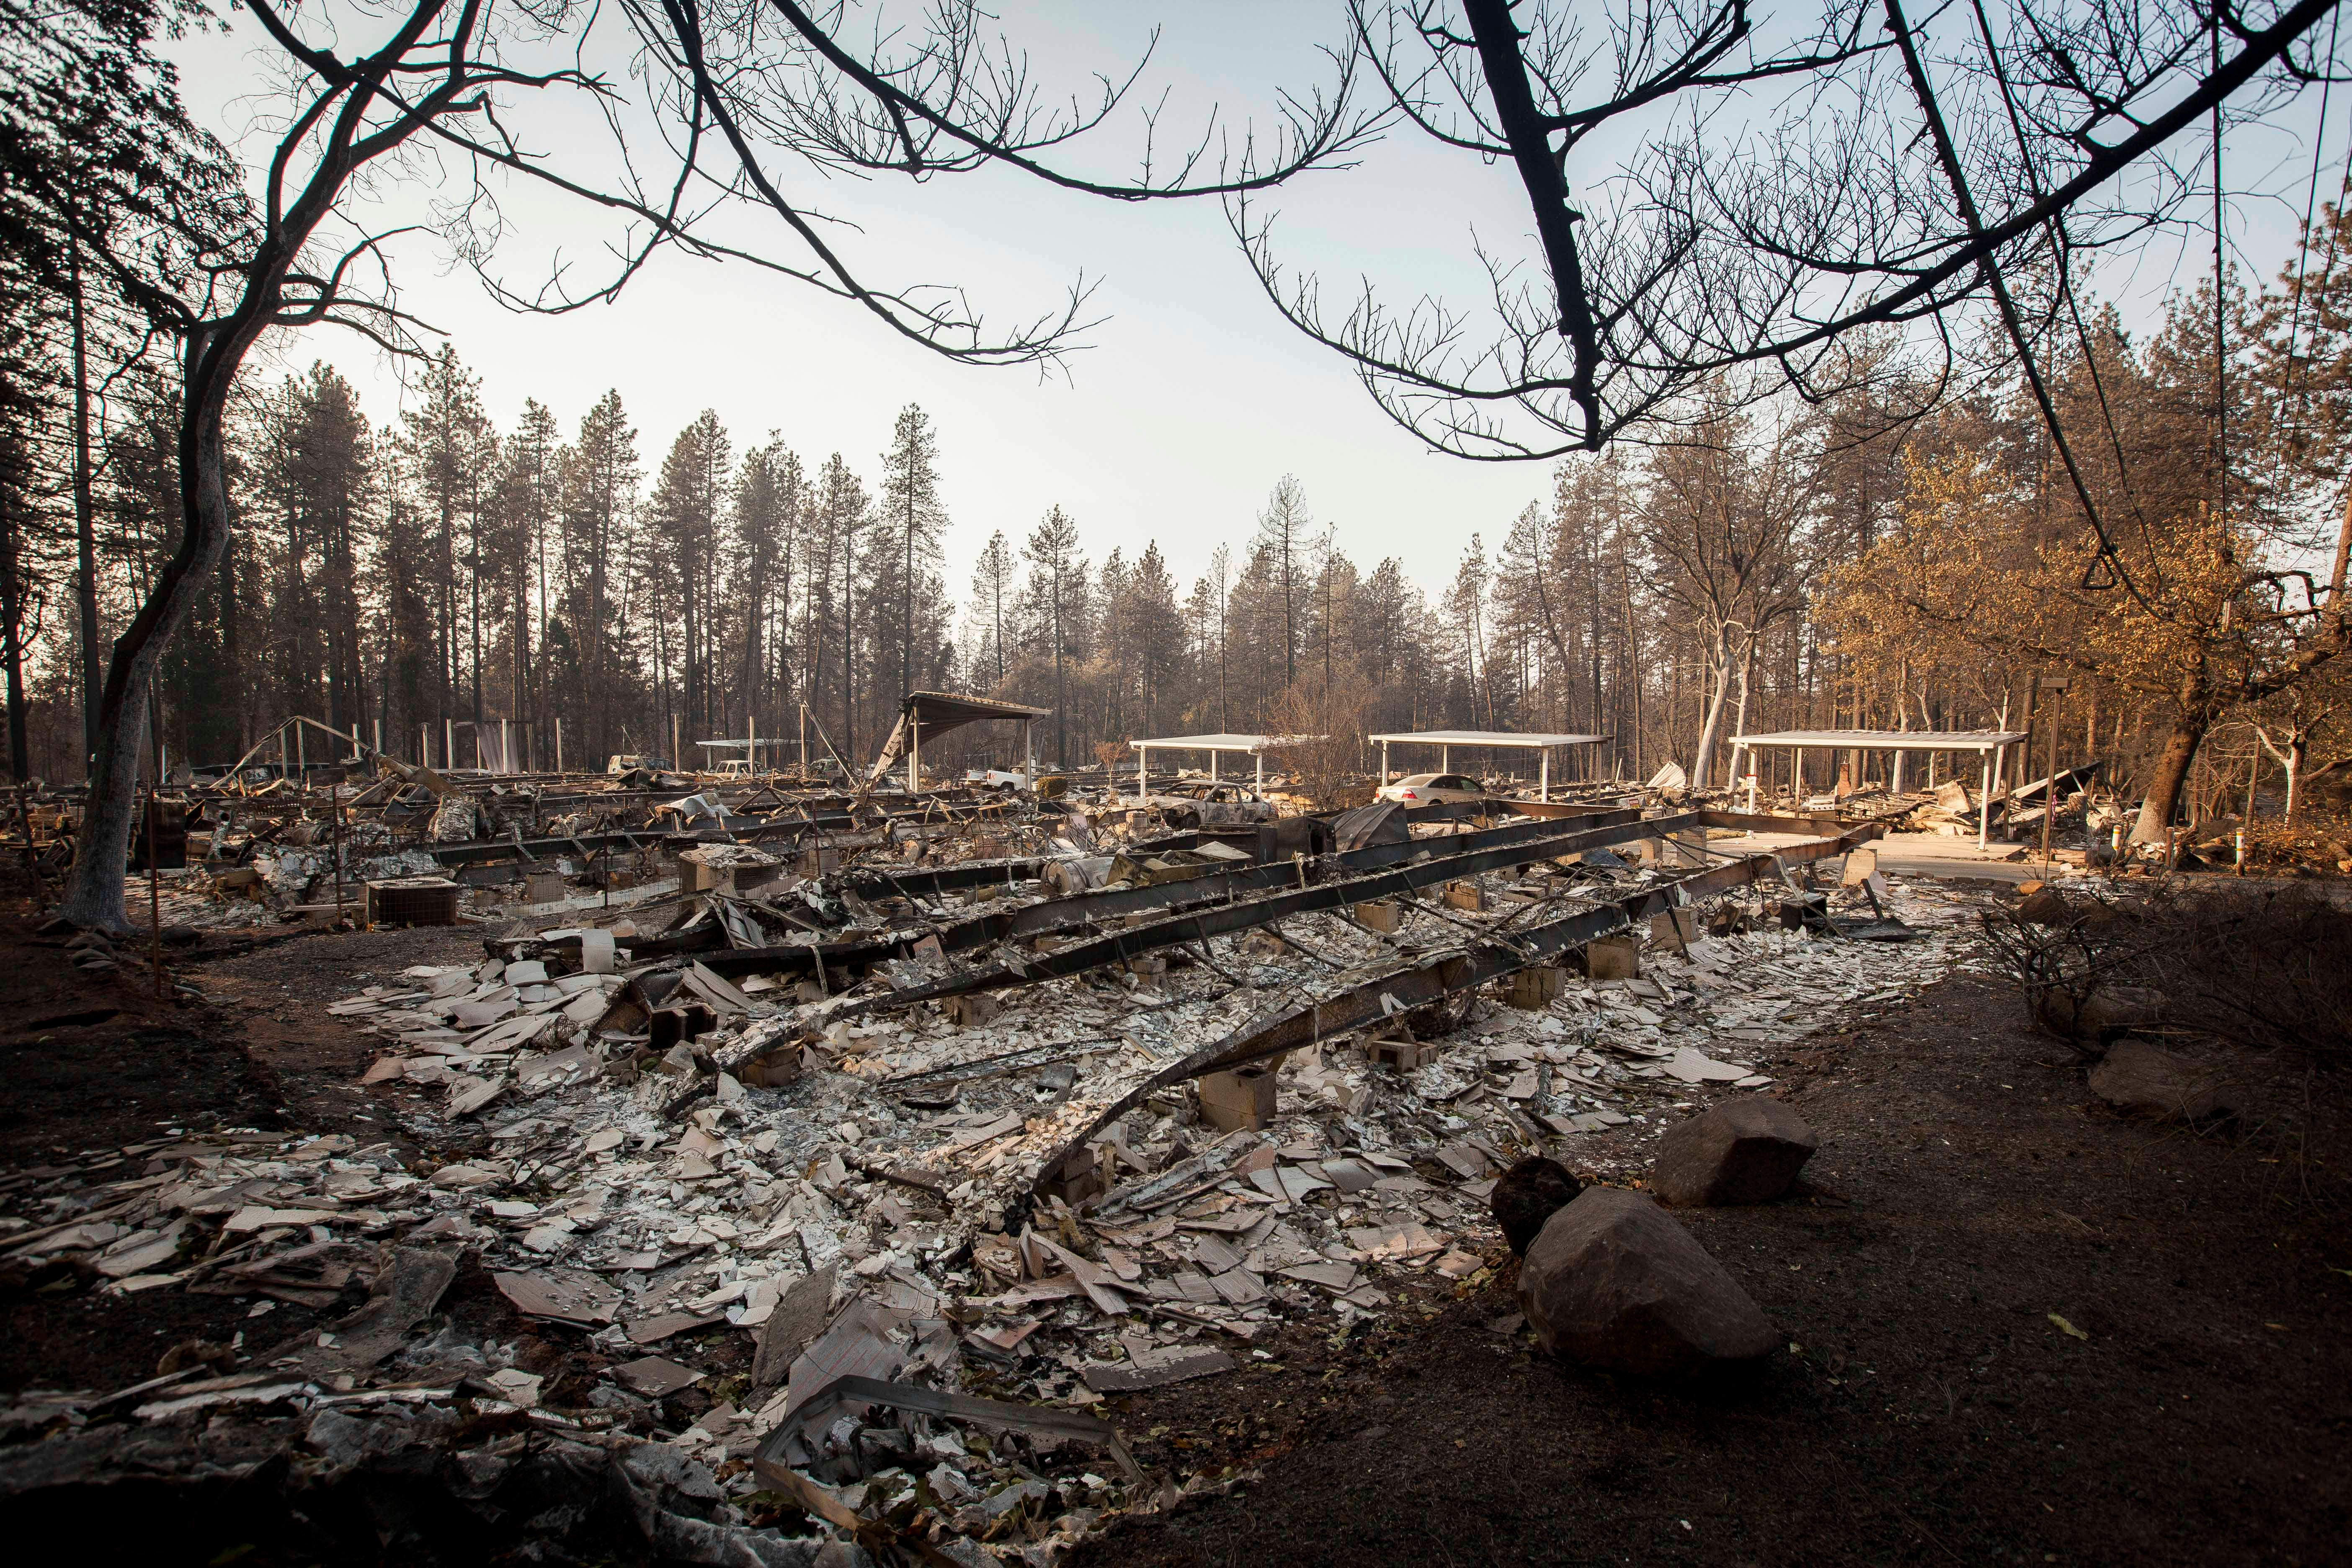 Class-action lawsuit alleges deadly California wildfire was caused by Pacific Gas & Electric